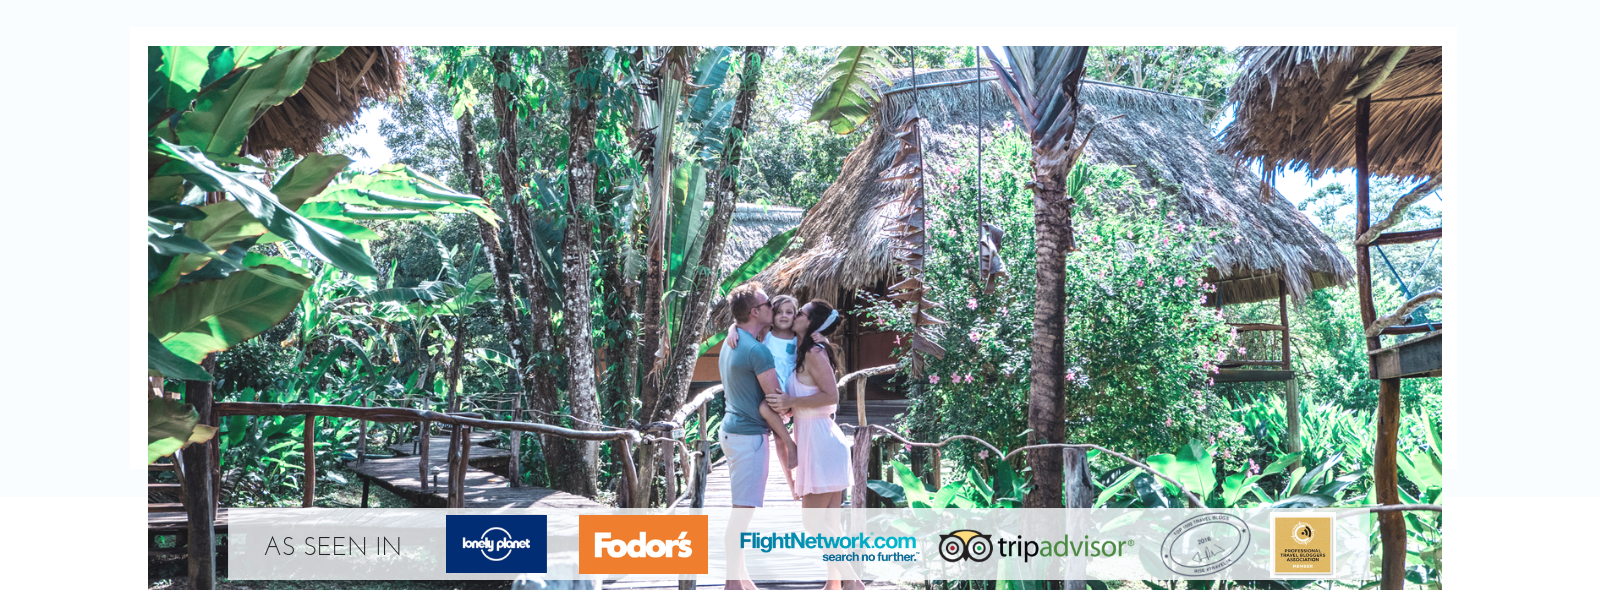 Easy Planet Travel: Best Family Travel Blog